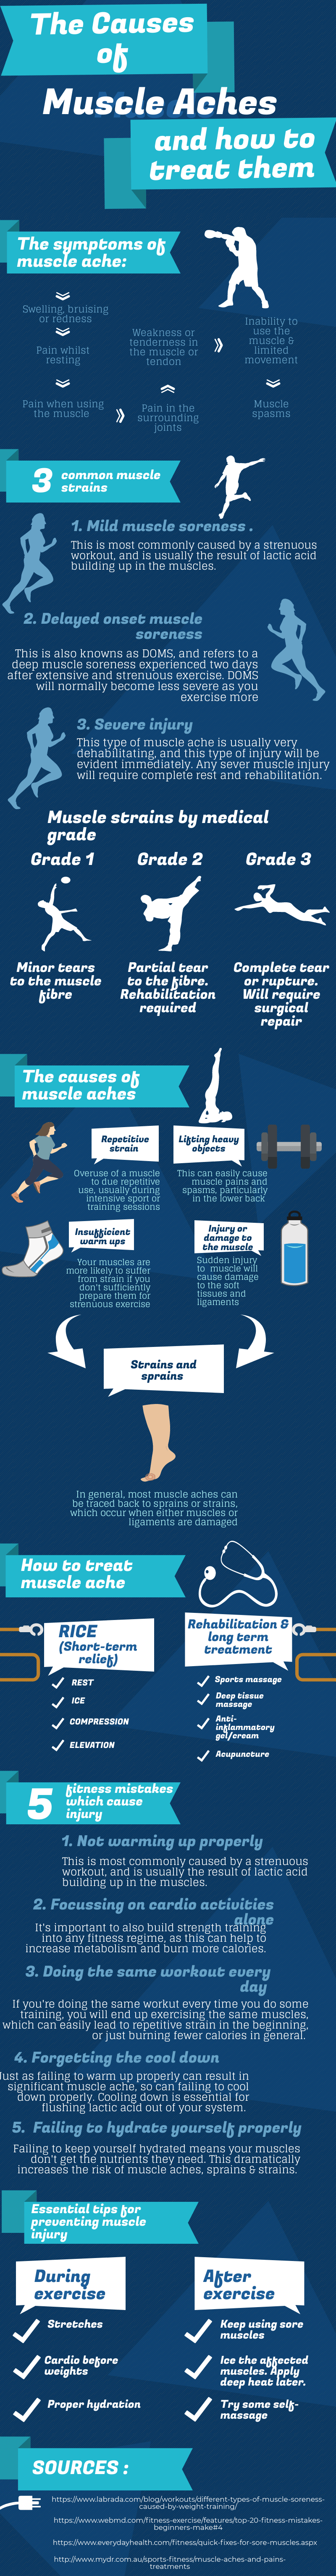 The common causes of muscle pain and how to avoid them in your exercise regimee